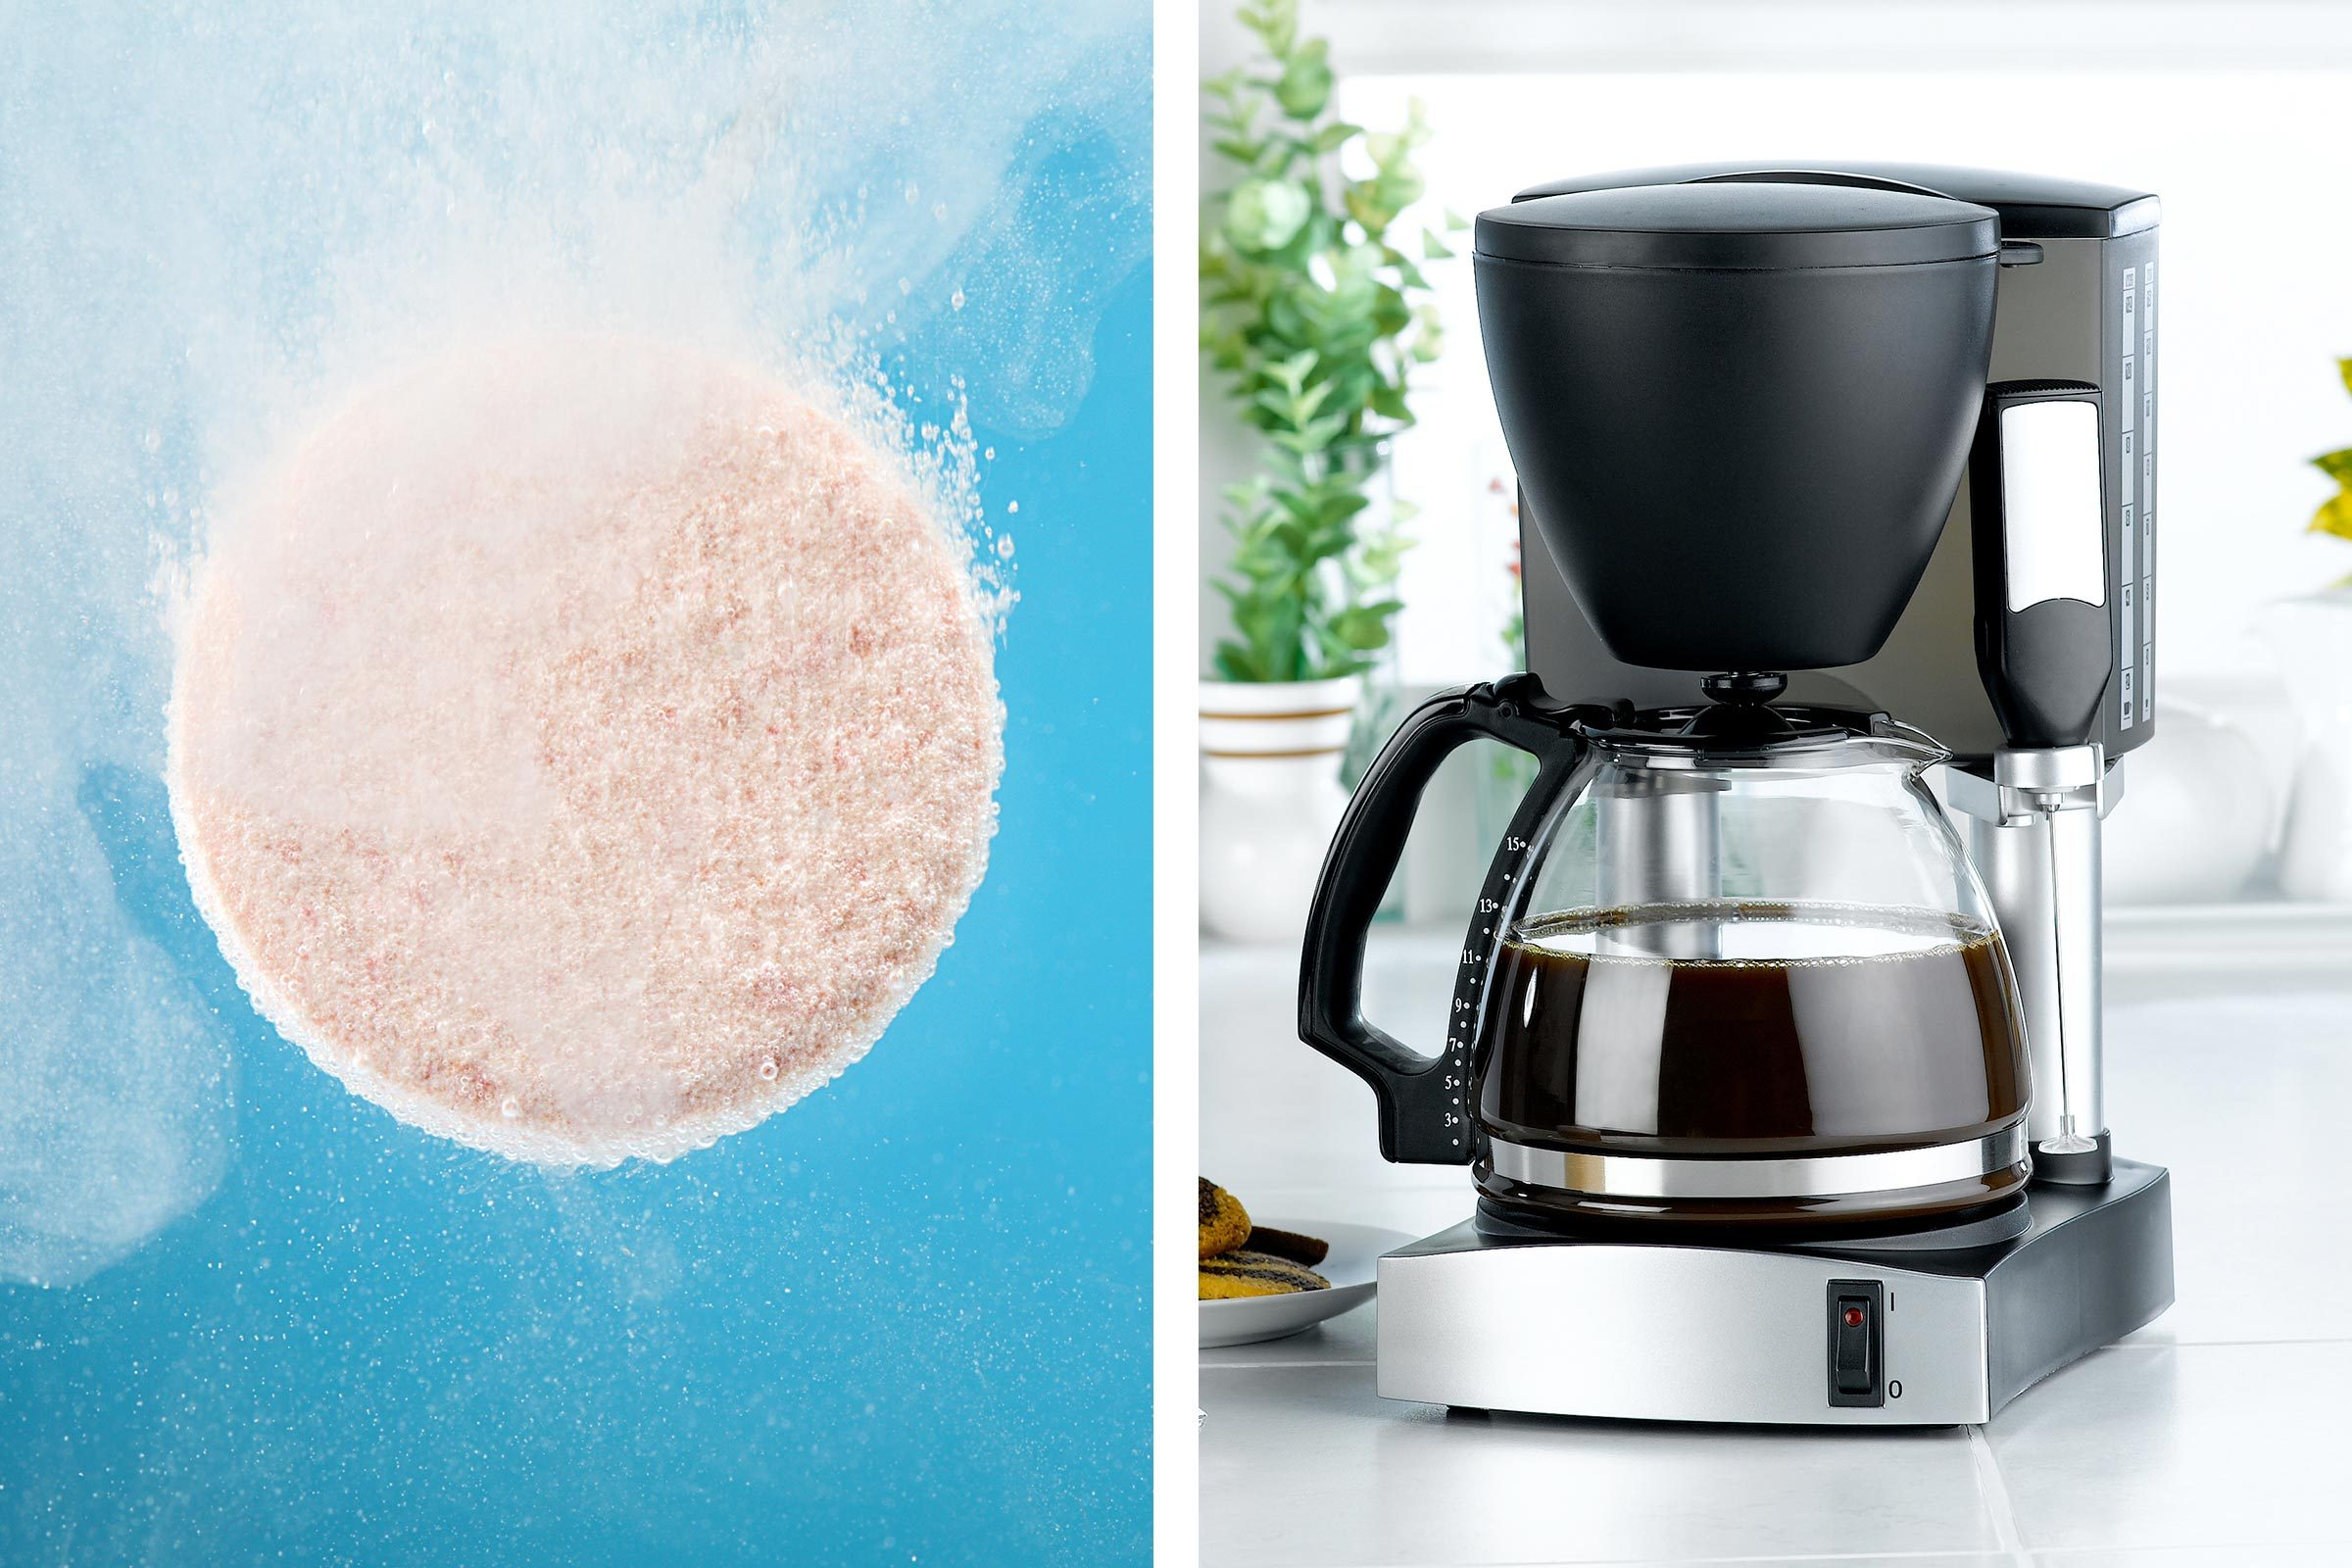 Alka-Seltzer as coffee maker cleaner